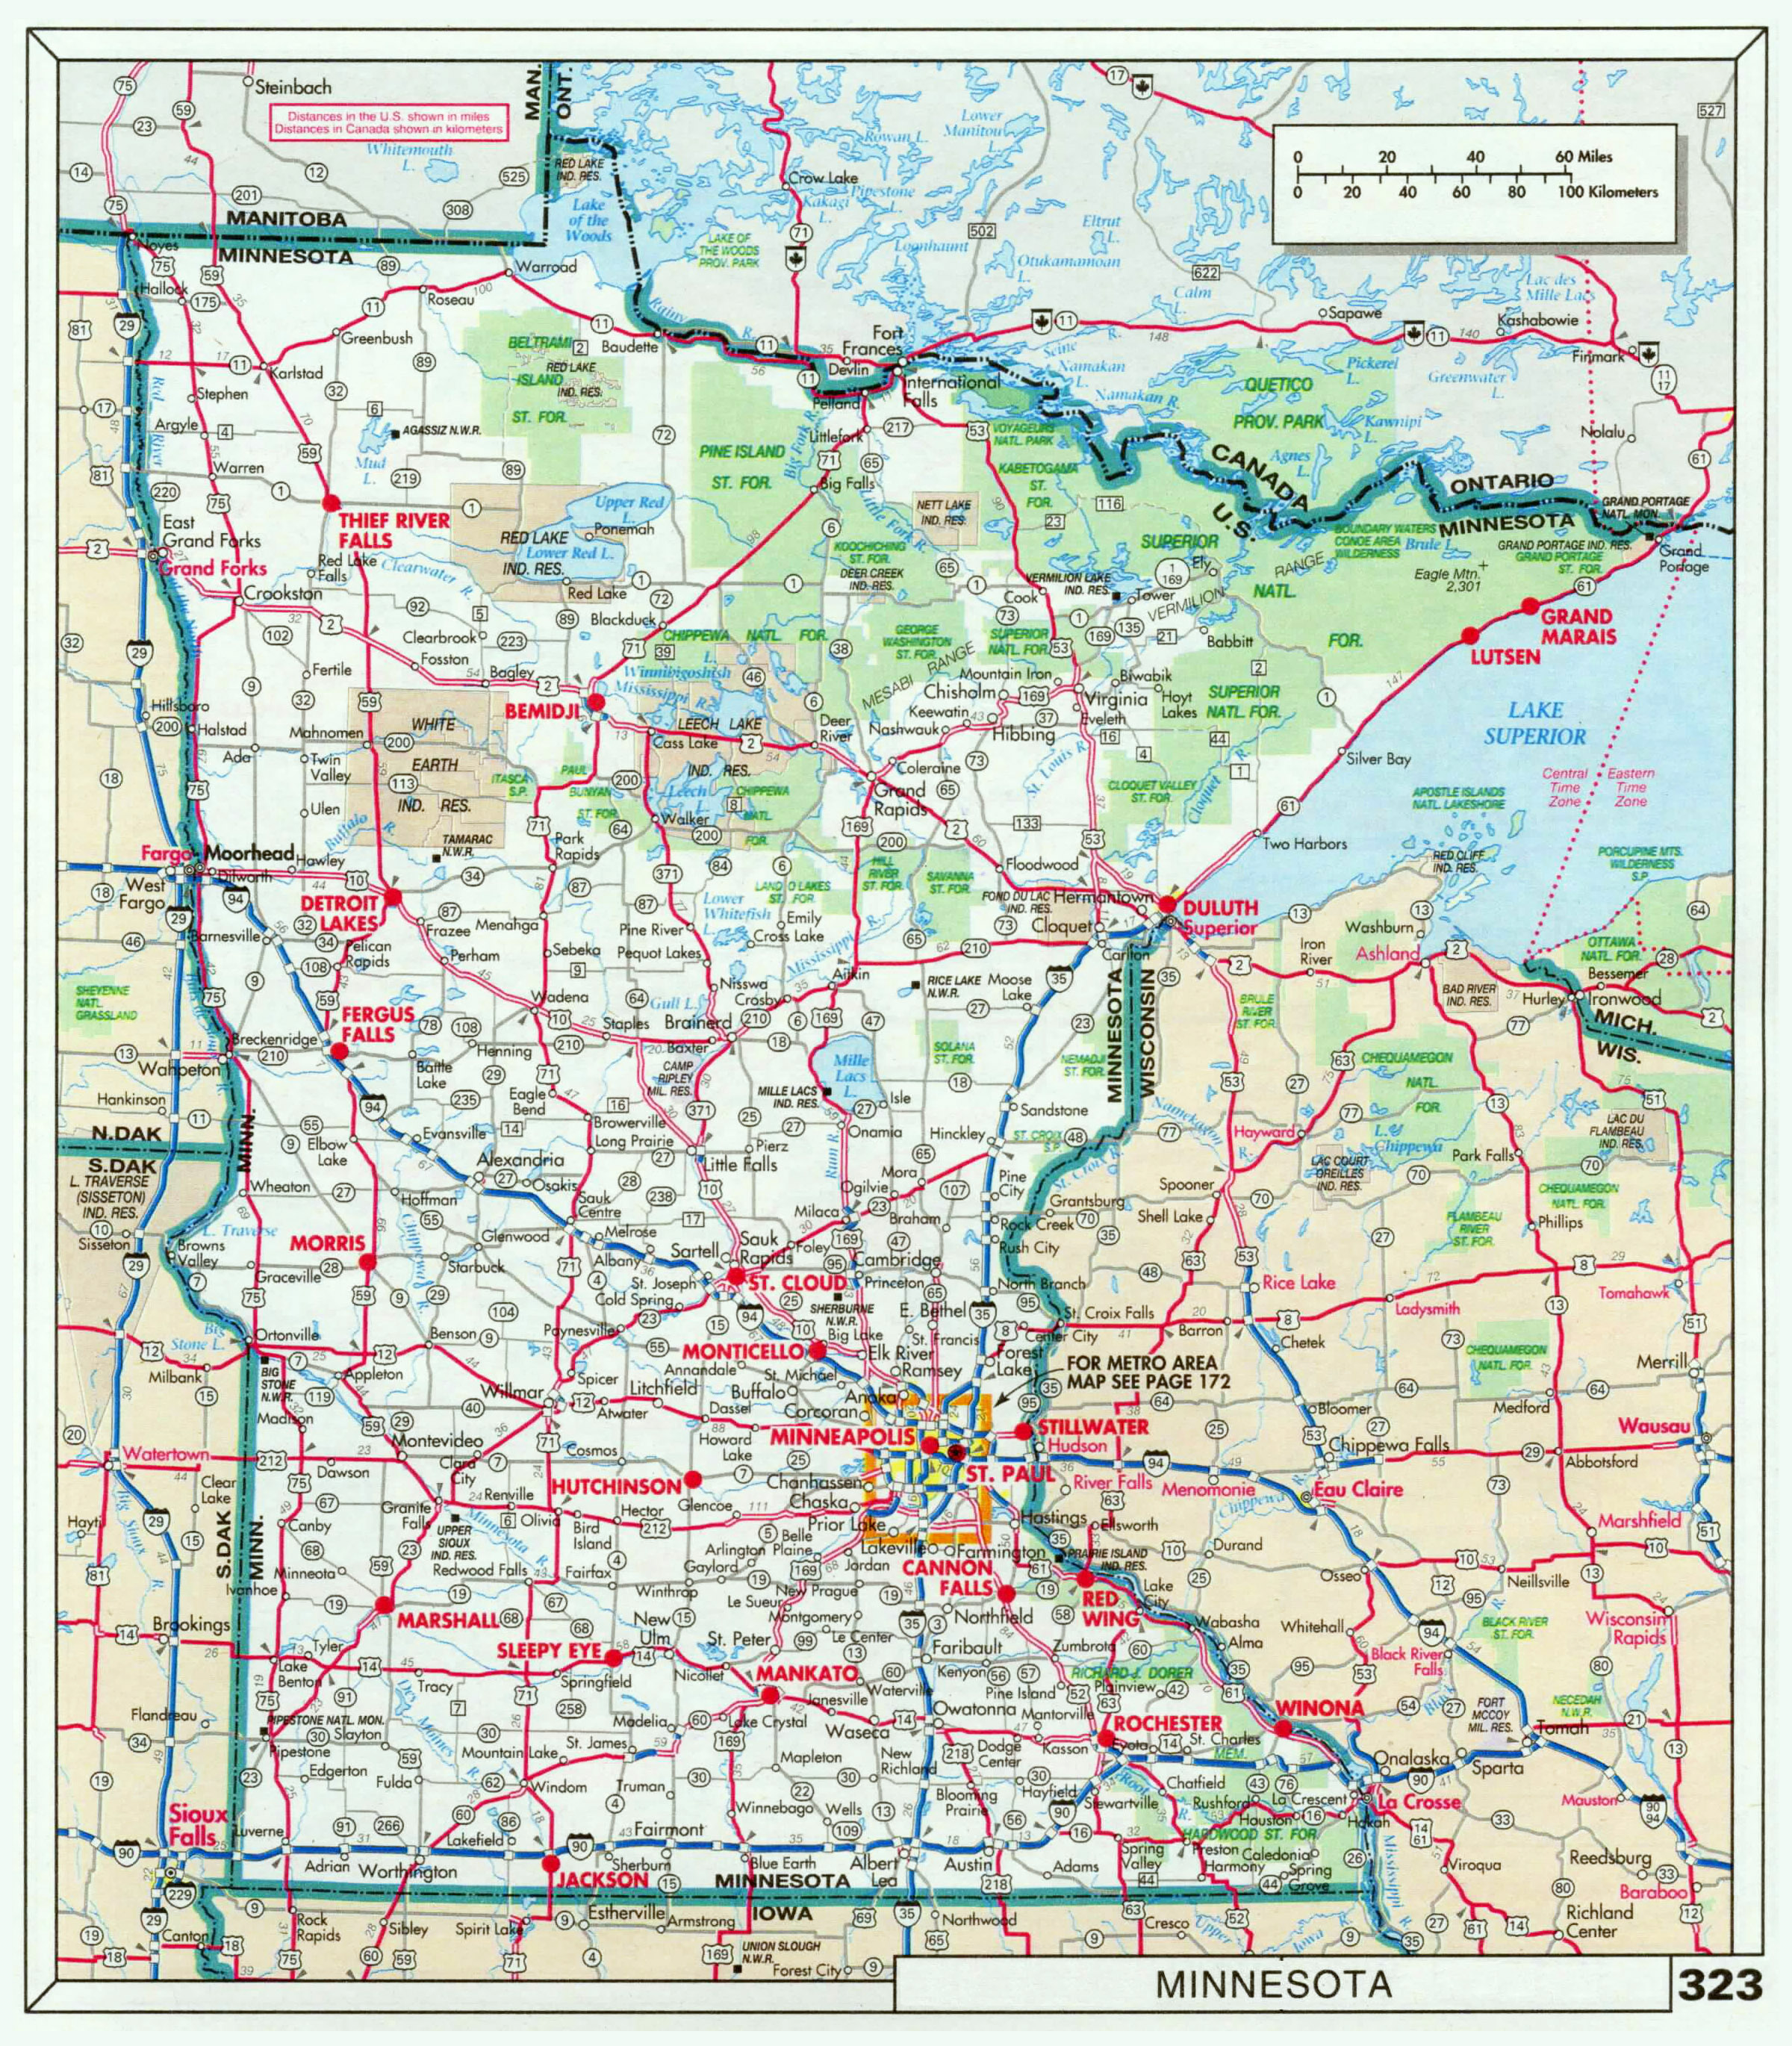 Large detailed roads and highways map of Minnesota state ... on map of oregon, map of connecticut, map of colorado, map of georgia, two harbors minnesota, map of ohio, cities in minnesota, map of illinois, famous landmarks in minnesota, anoka minnesota, map of delaware, county map minnesota, minnetonka minnesota, map of alabama, map of missouri, explore minnesota, eagan minnesota, st cloud minnesota, map of florida, madison minnesota, map of michigan, rural minnesota, map of hawaii, andover minnesota, eden prairie minnesota, map of pennsylvania, grand marais minnesota, map of new jersey, princeton minnesota, map of virginia, marcell minnesota, google maps minnesota, map of oklahoma, map of germany, glenwood minnesota, willmar minnesota, buffalo minnesota,